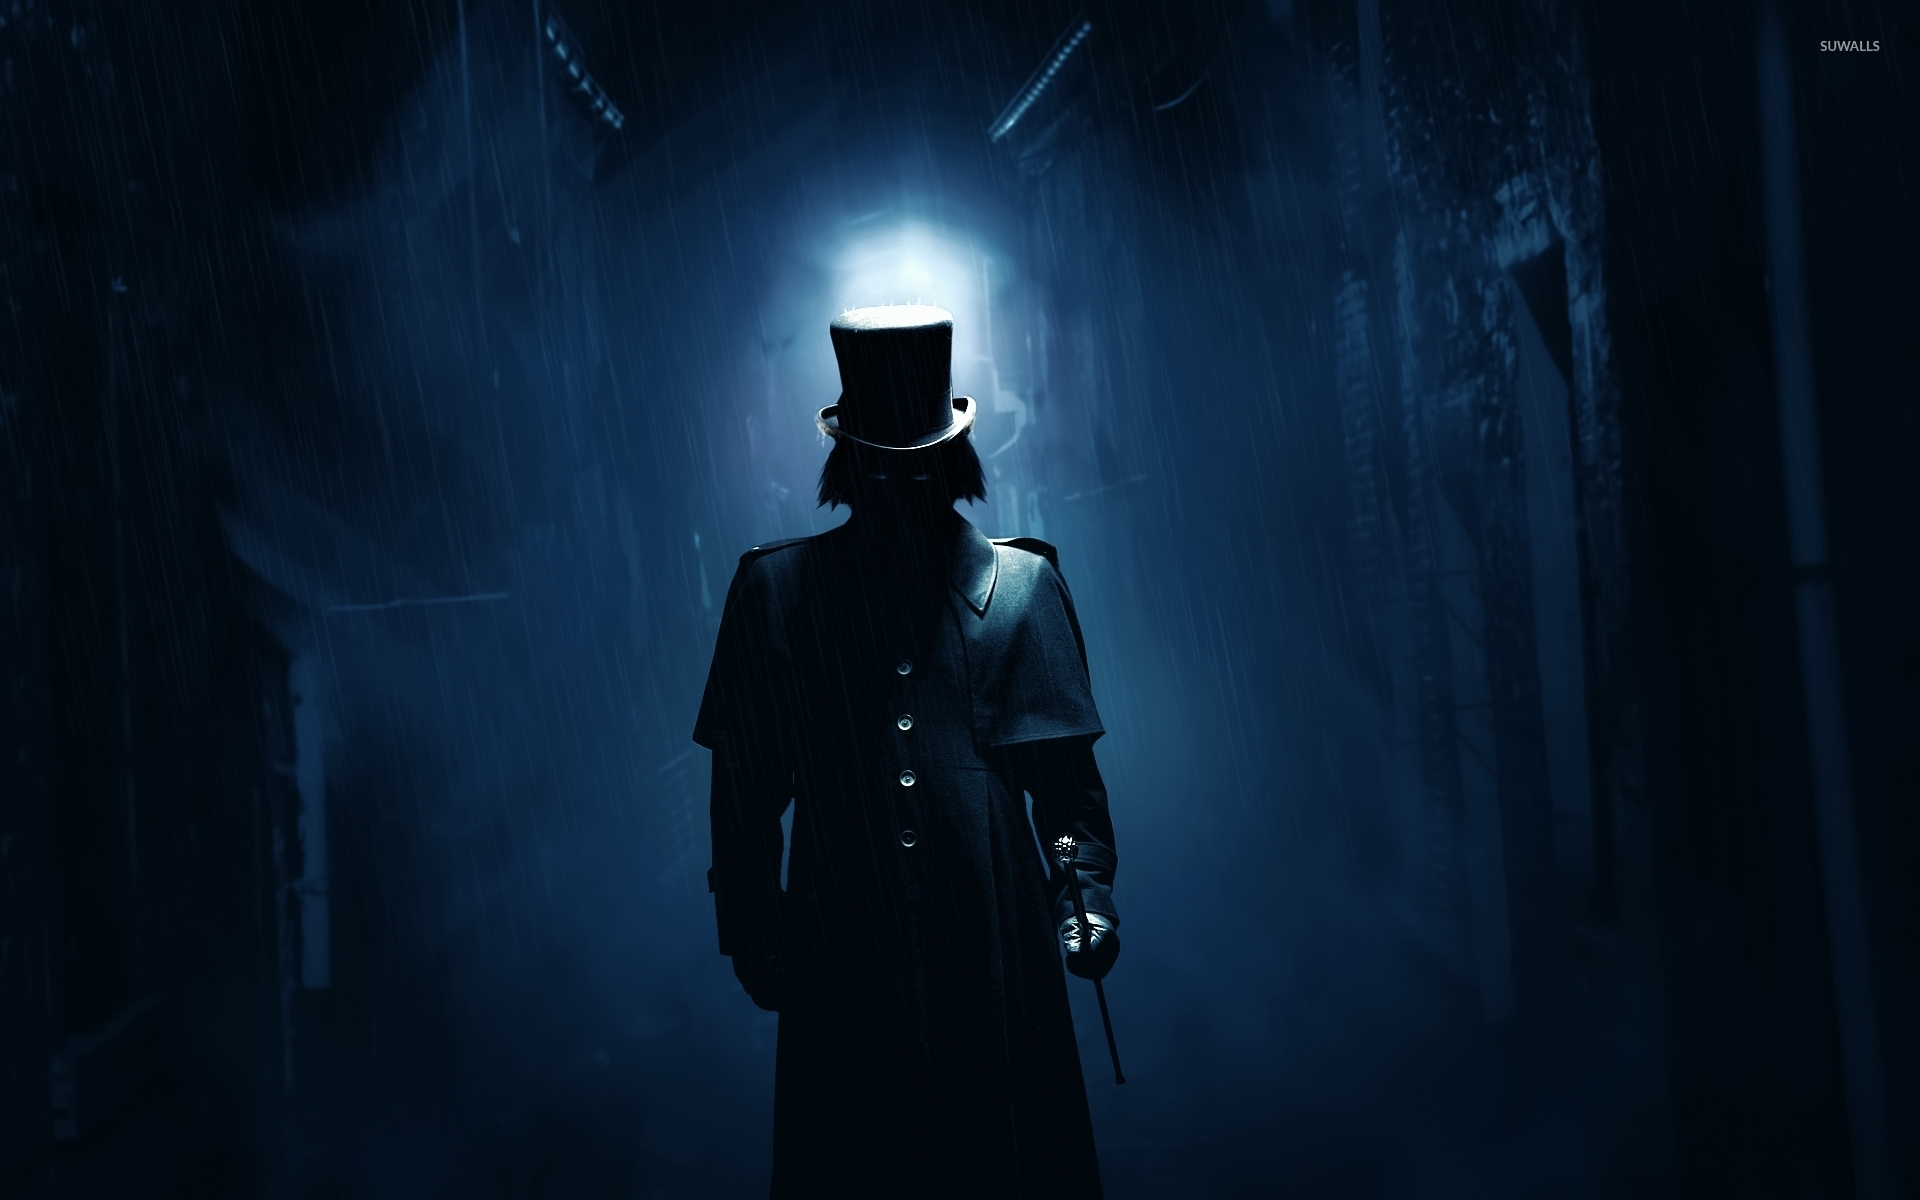 Jack the ripper on a dark london street wallpaper digital art jack the ripper on a dark london street wallpaper voltagebd Choice Image